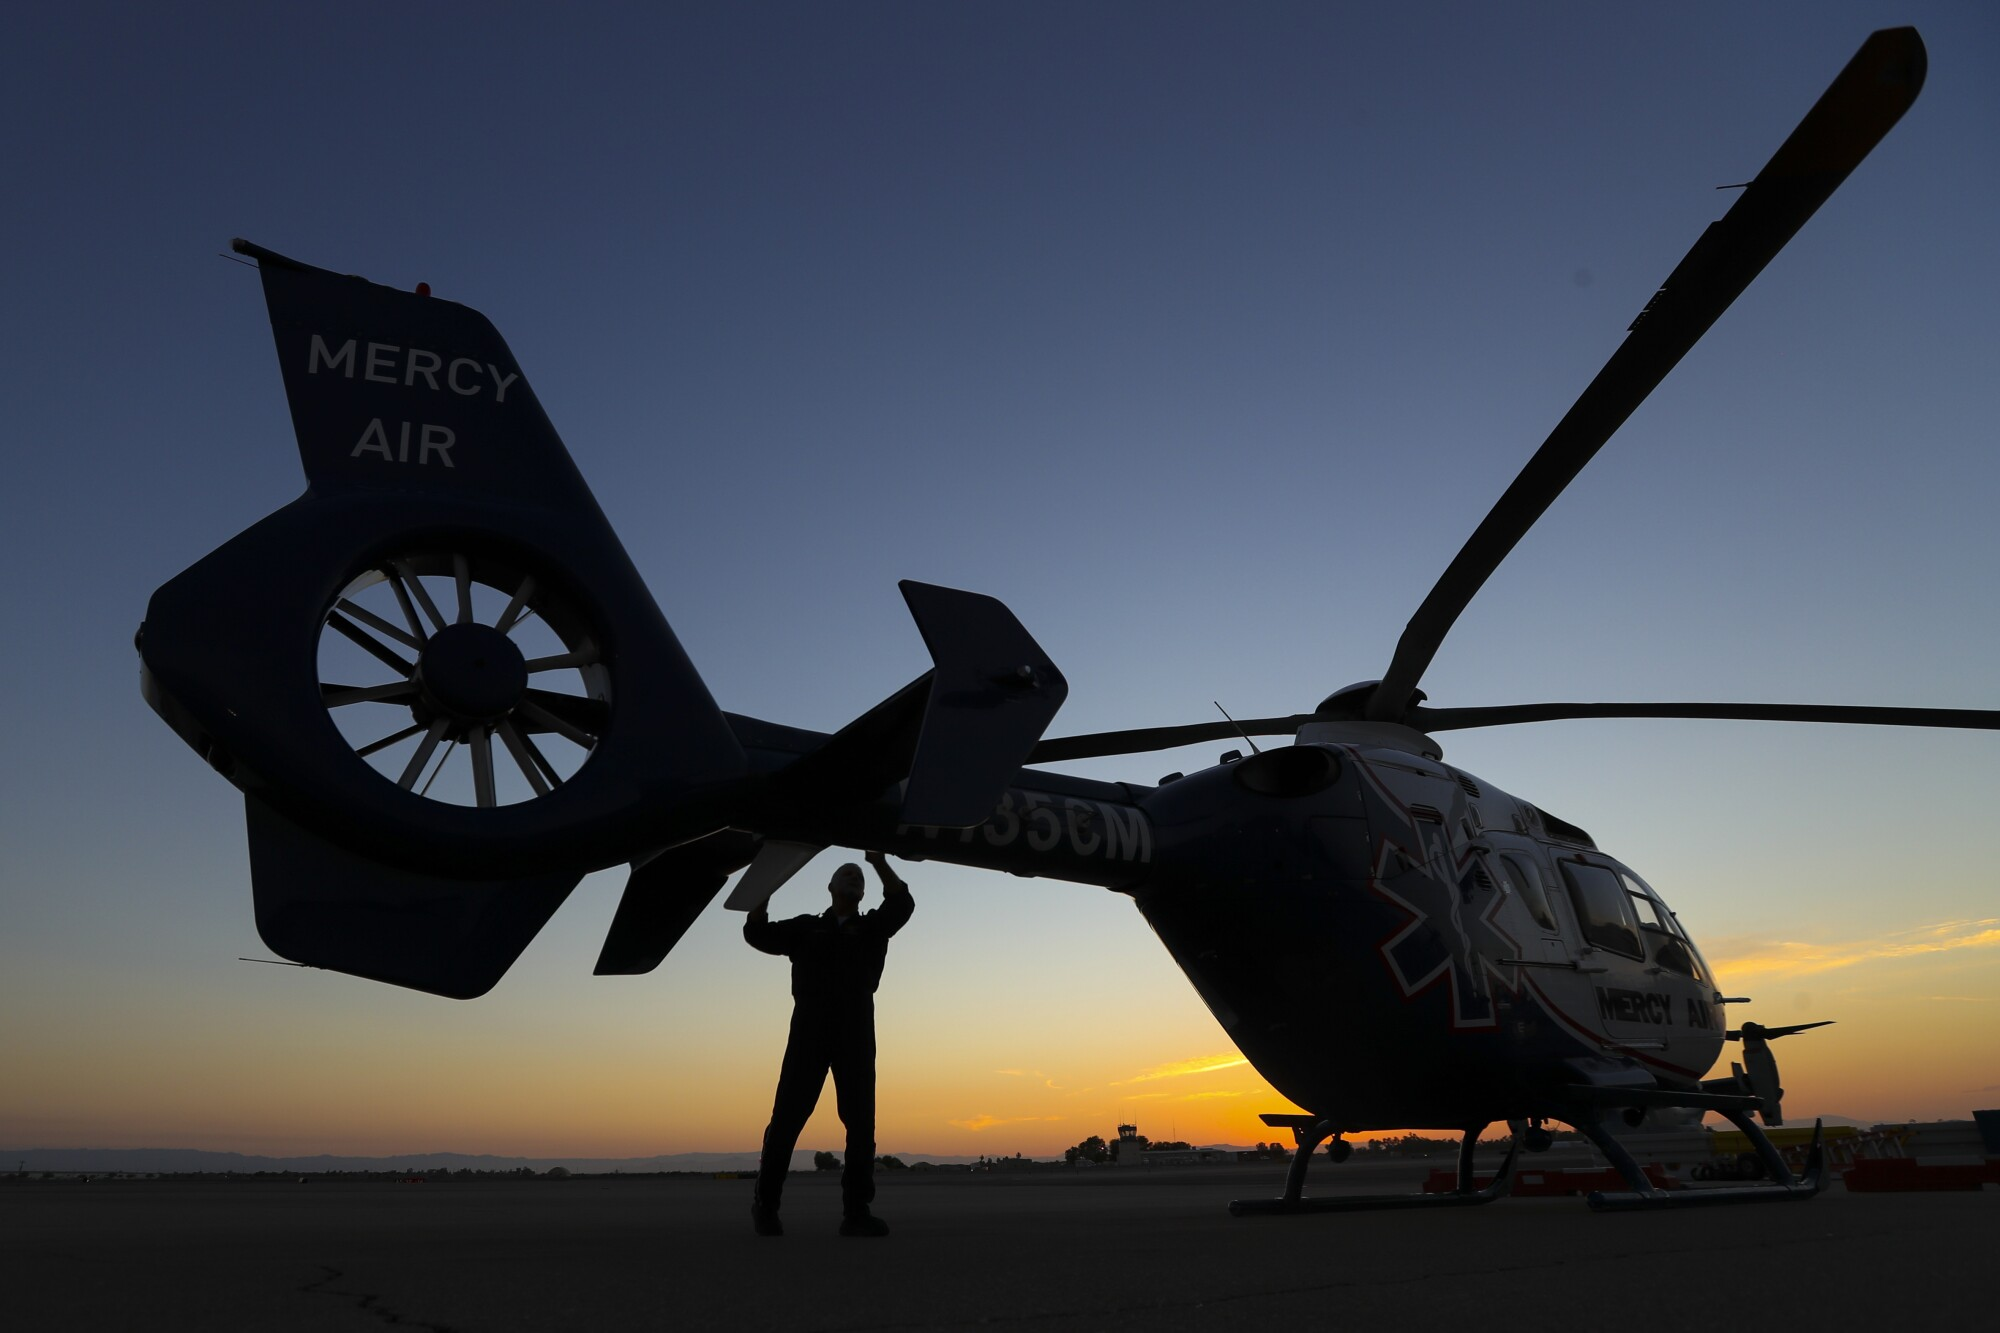 Pilot Michael Bobeck at the start of his 12 hour night shift checks Mercy Air helicopter at Imperial County Airport.